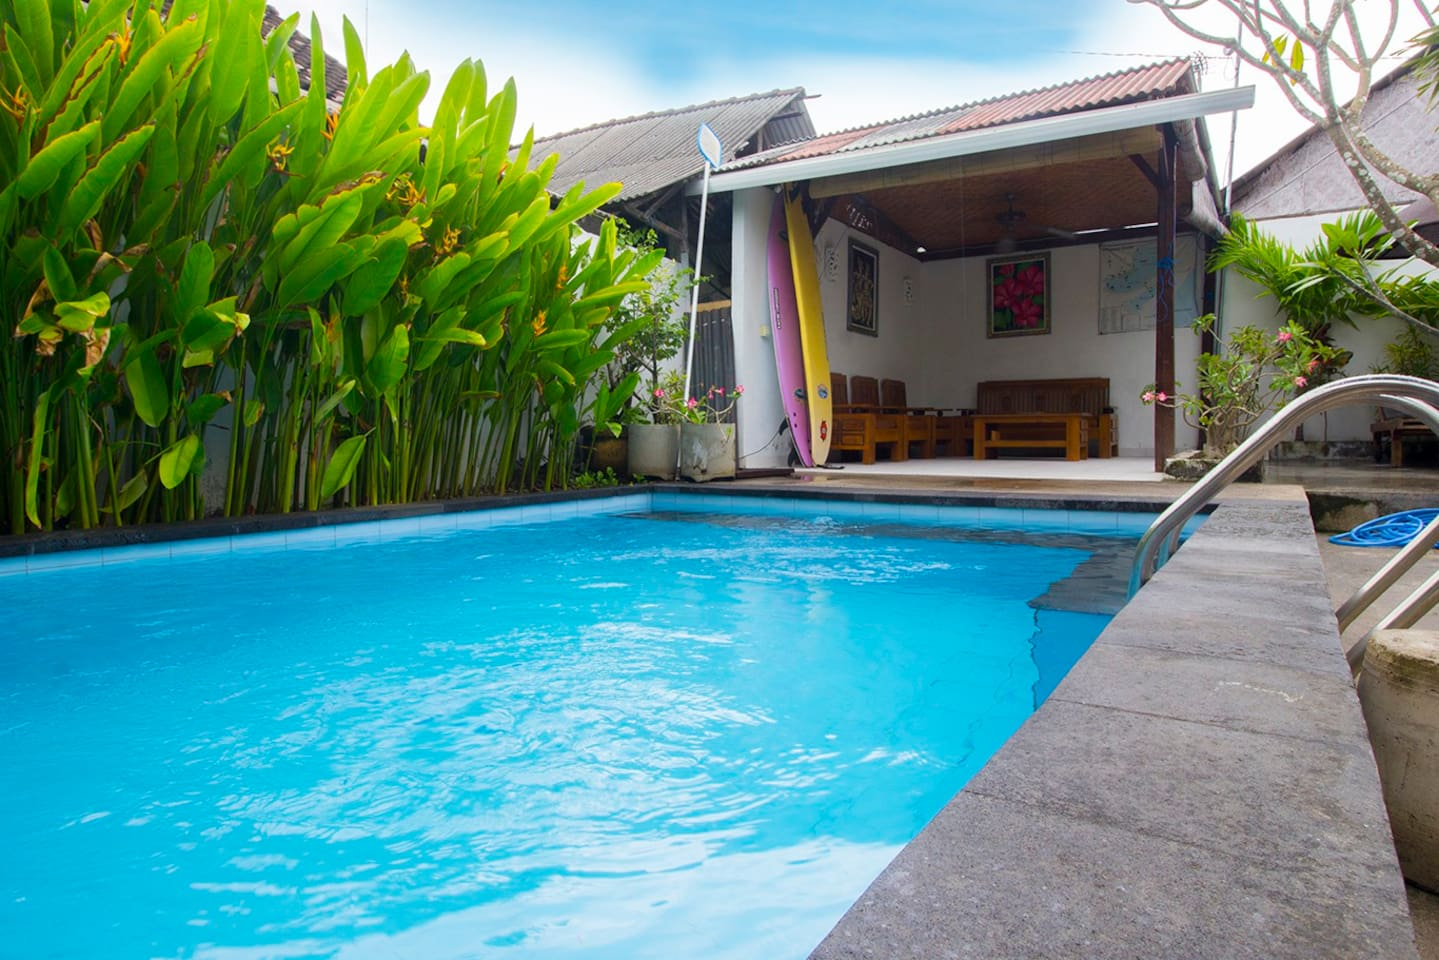 Pool for our guests